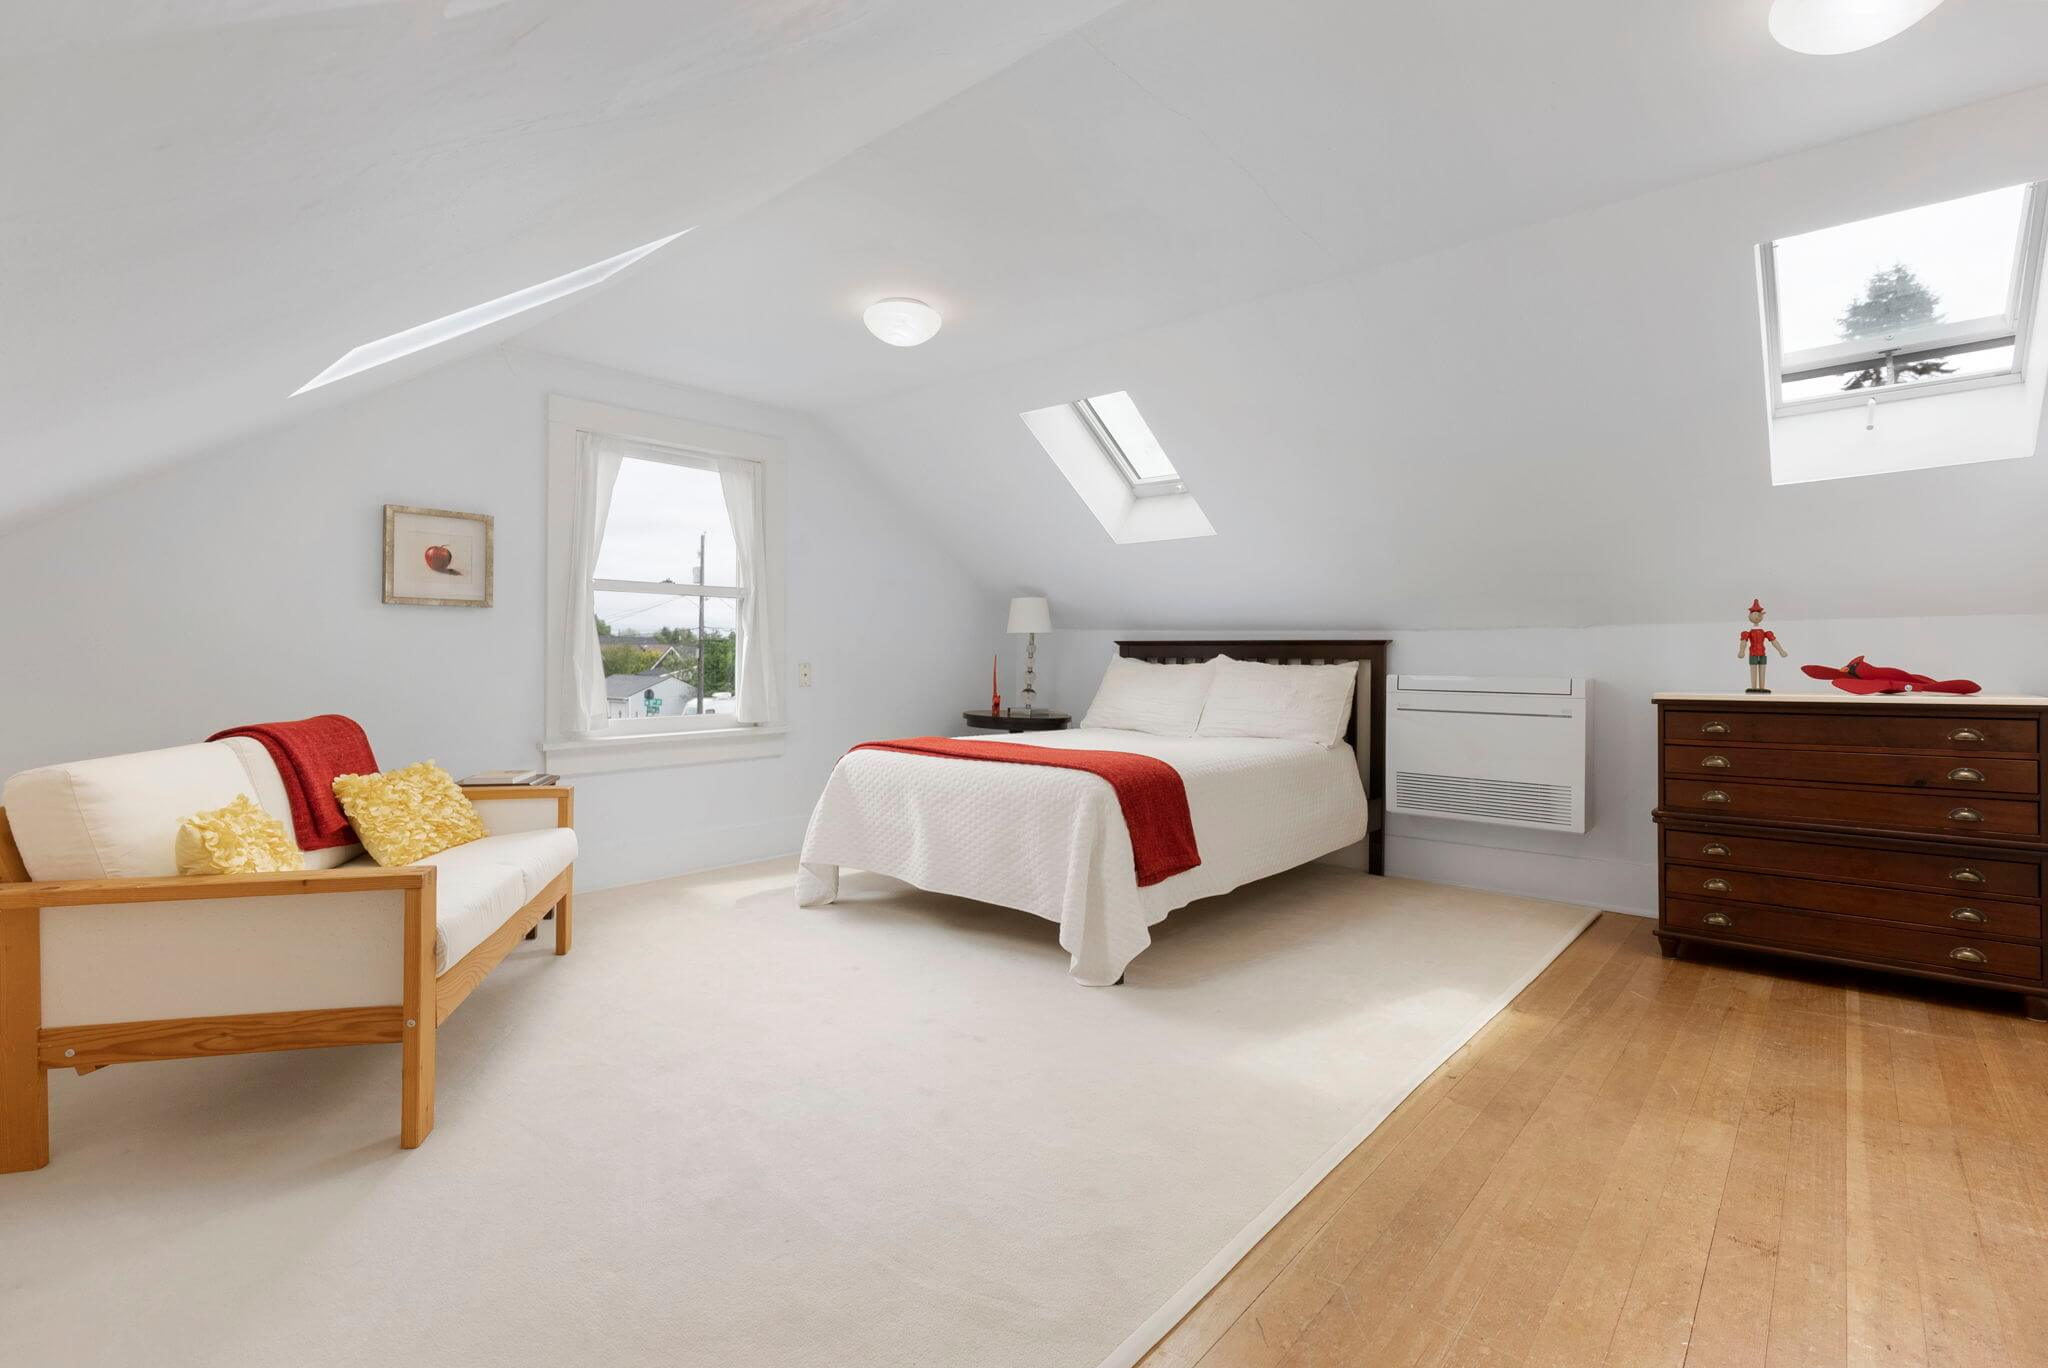 Master bedroom with a ductless mini-split for heating and cooling